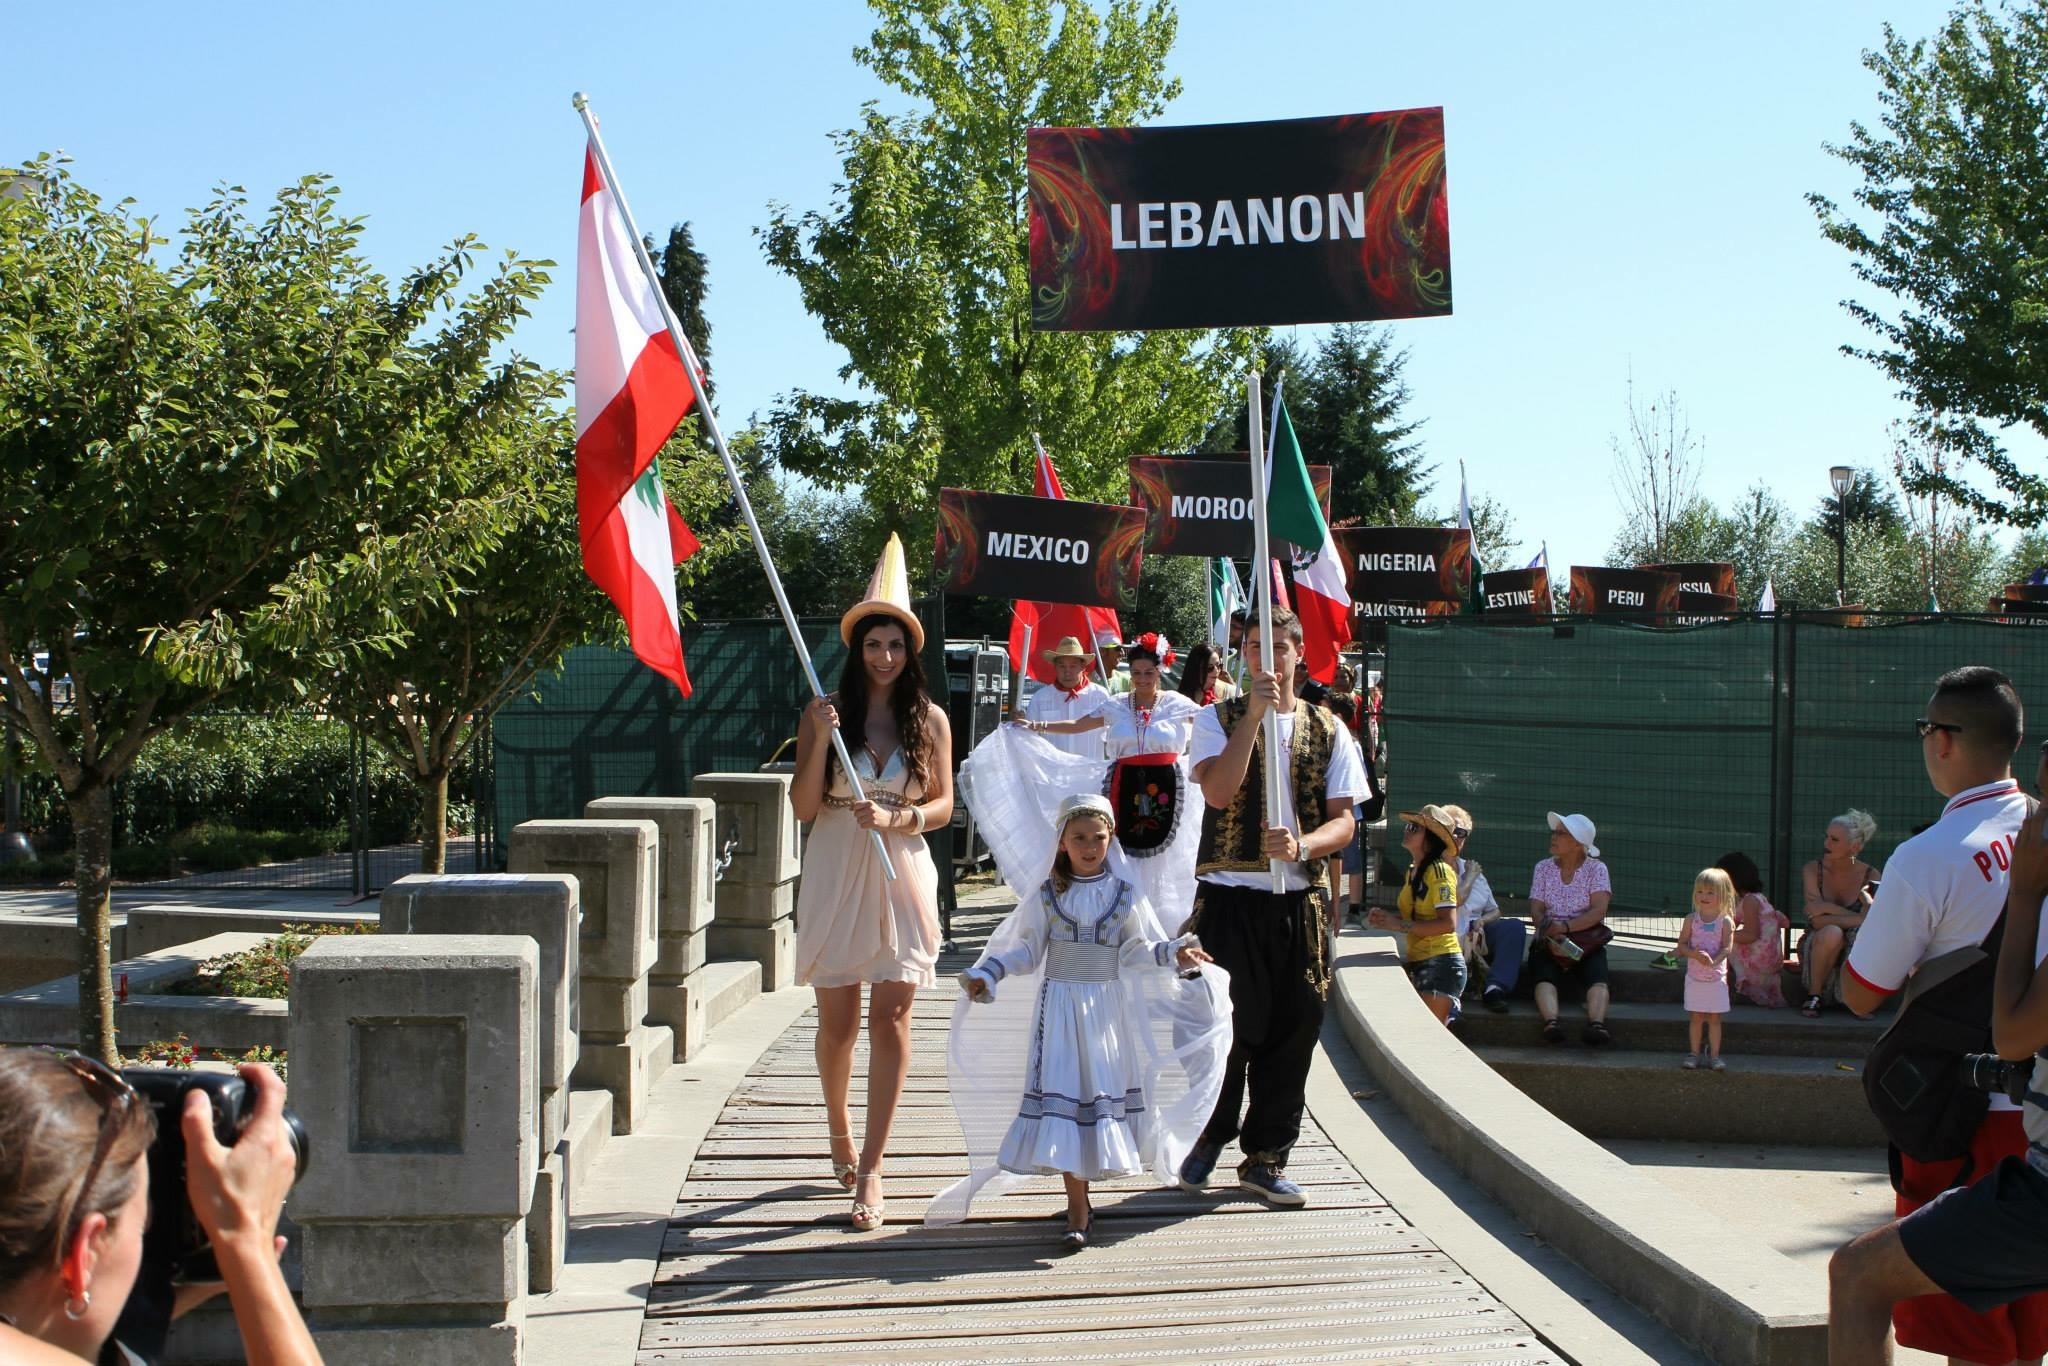 Lebanese delegations at Fusion Festival 2015